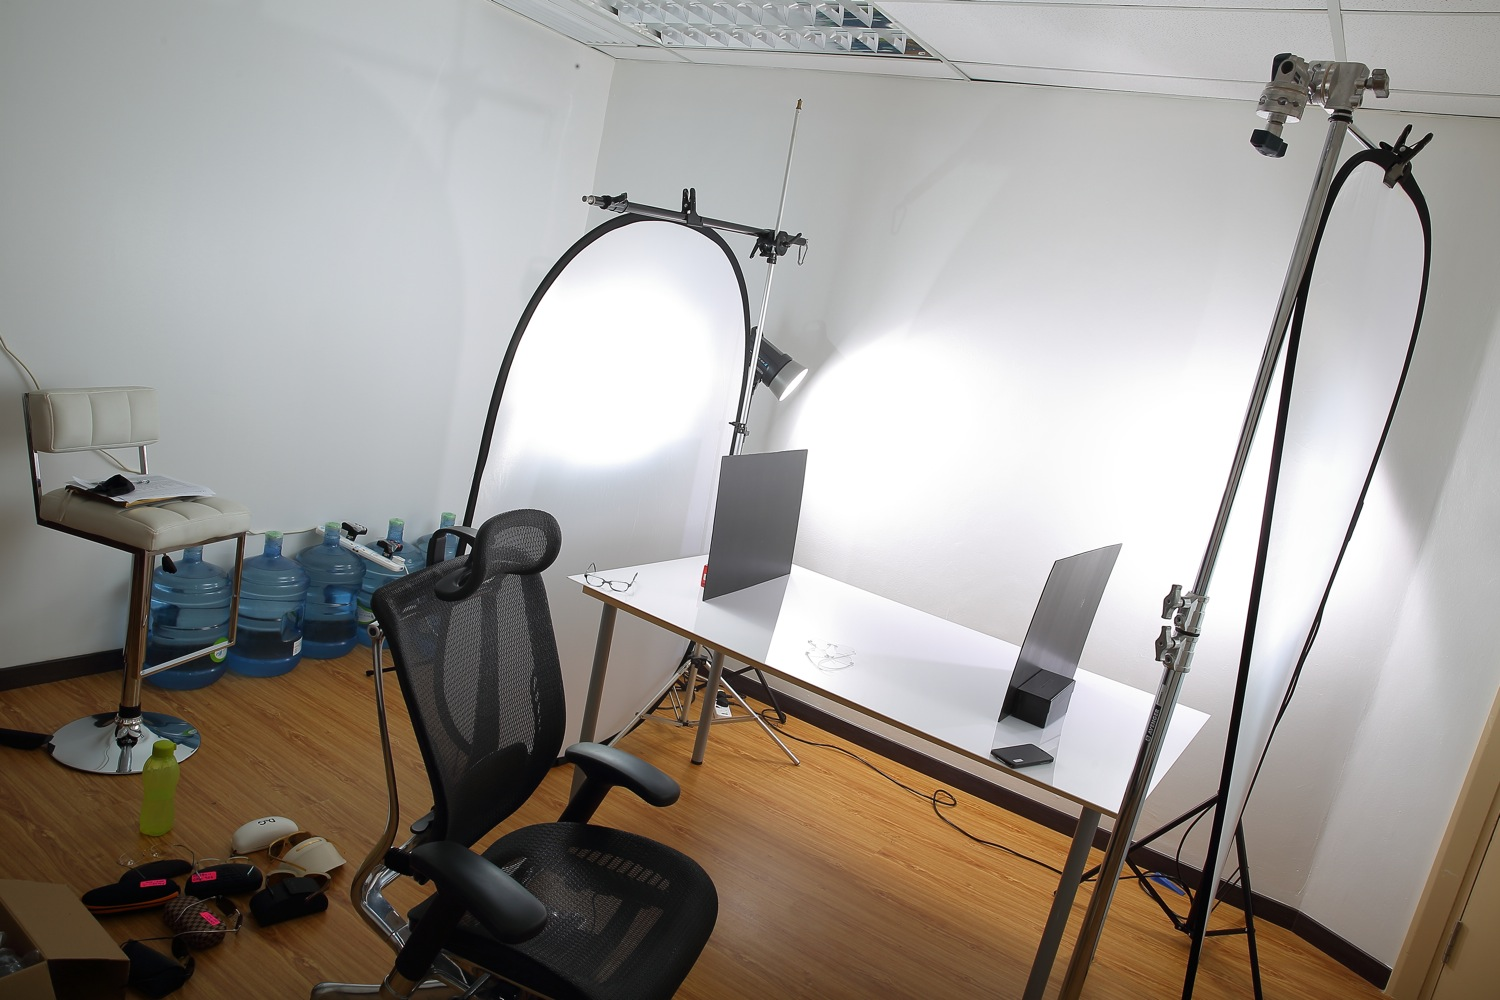 BTS: Photographing a transparent spectacle